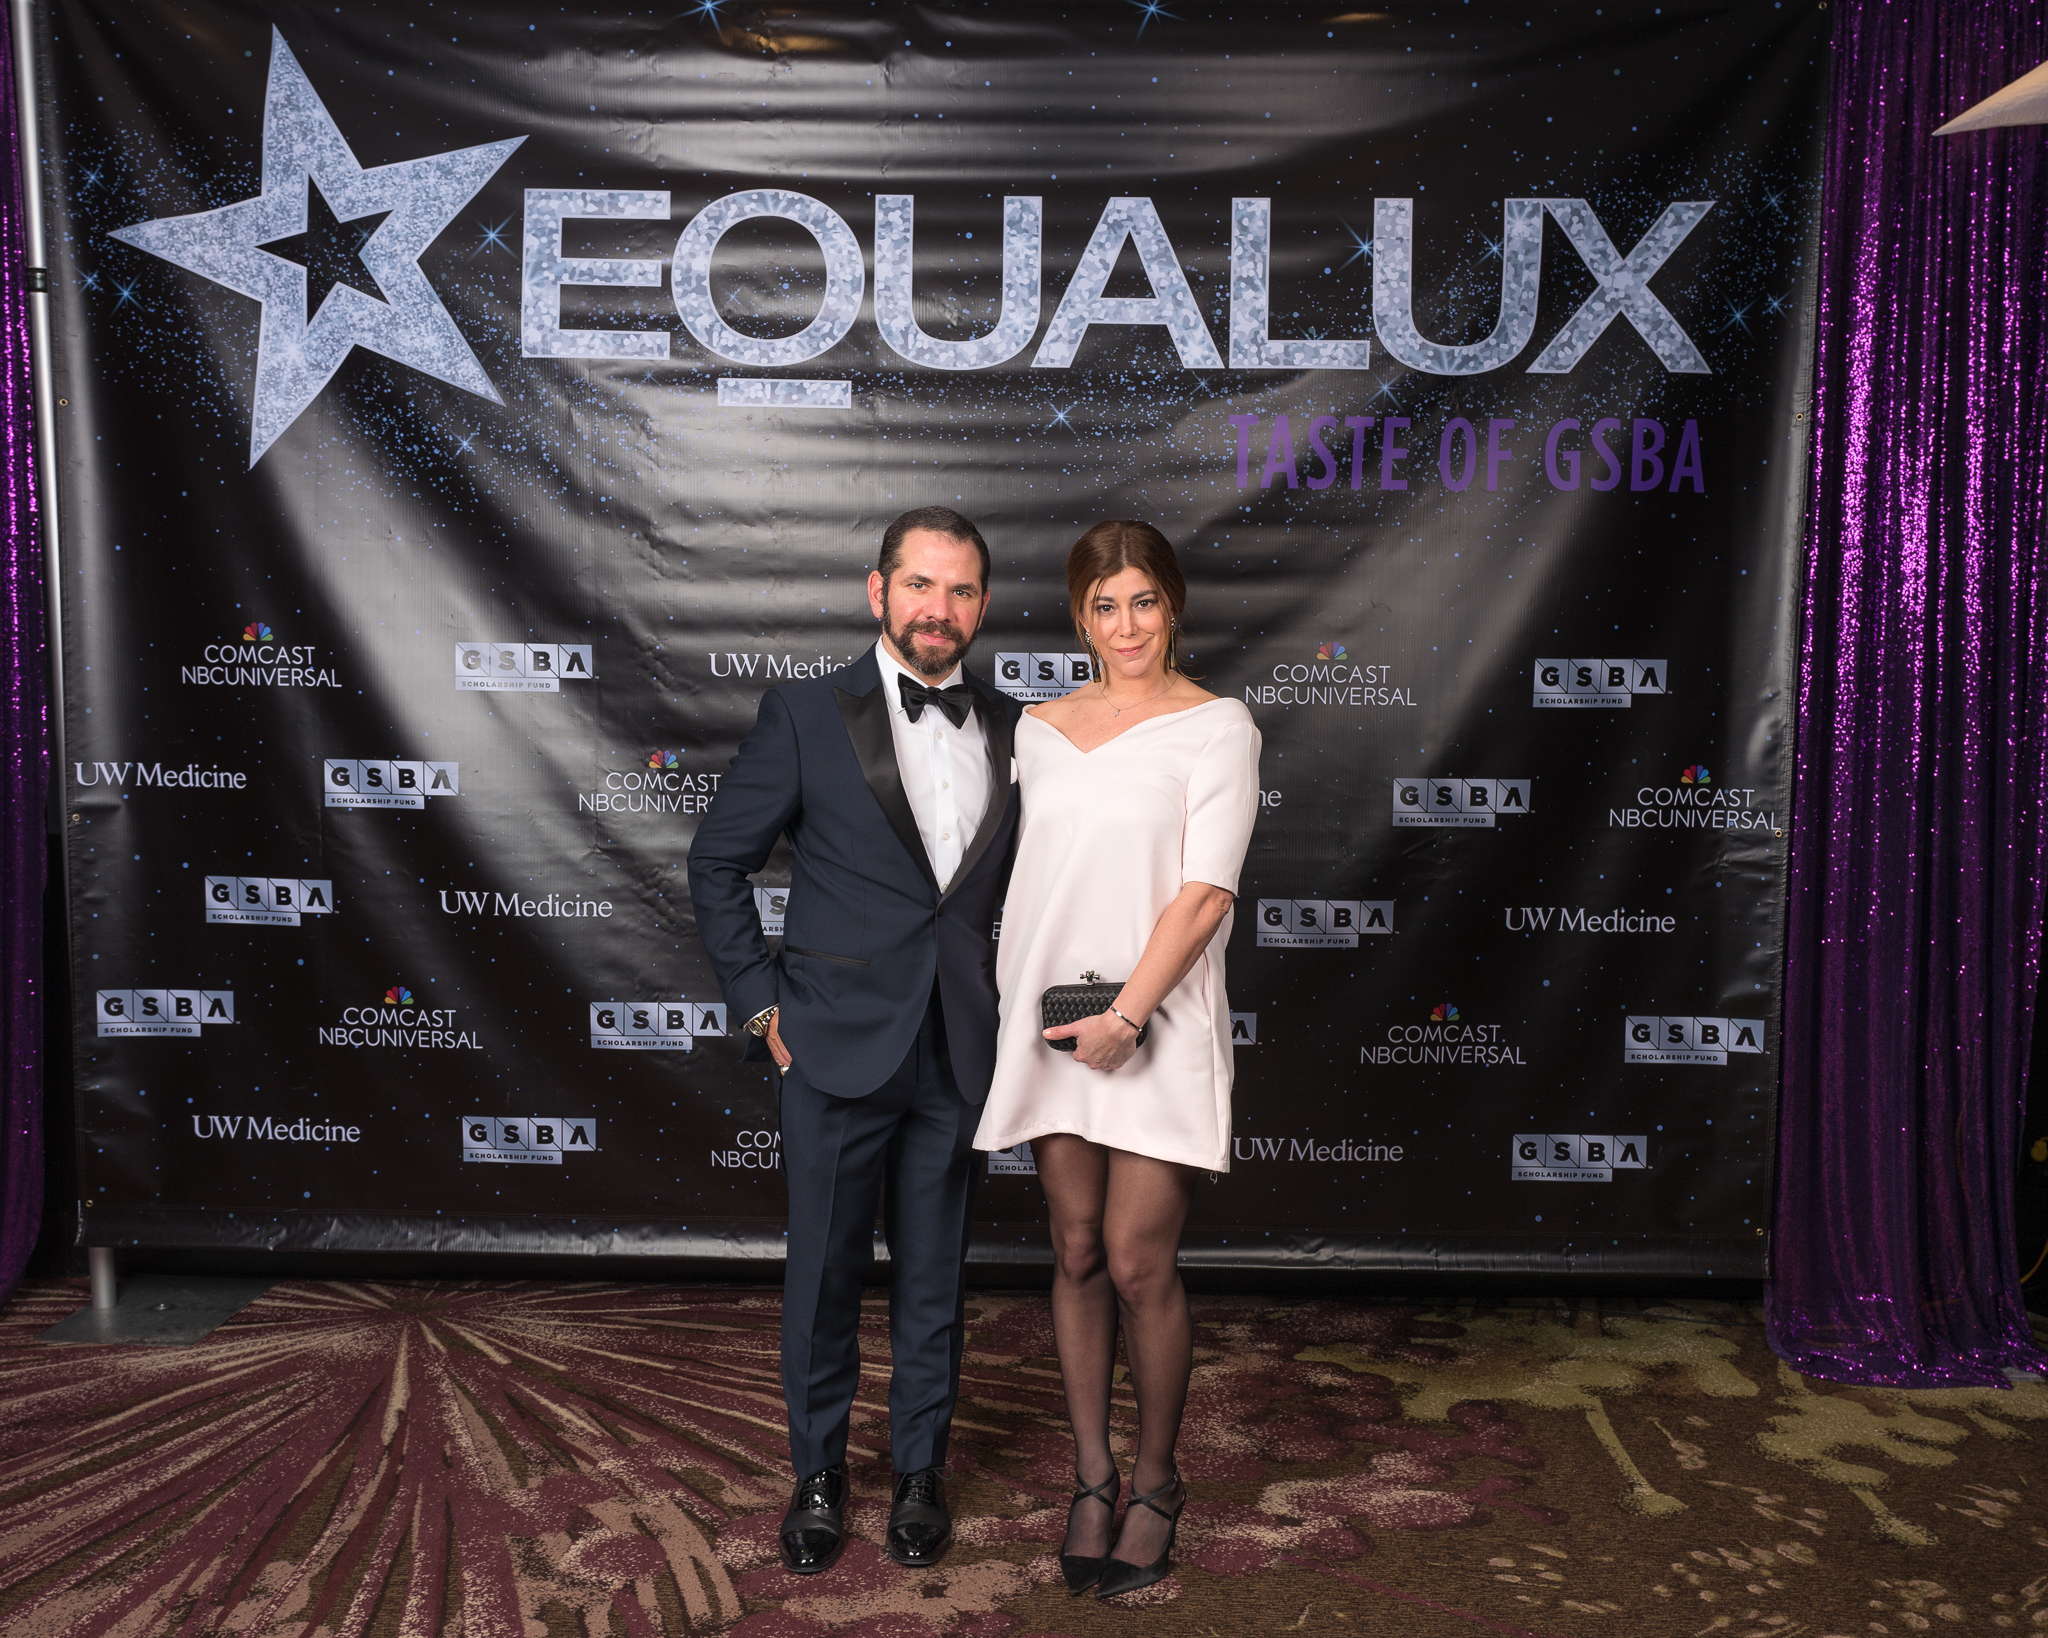 111718_GSBA EQUALUX at The Westin Seattle (Credit- Nate Gowdy)-182.jpg